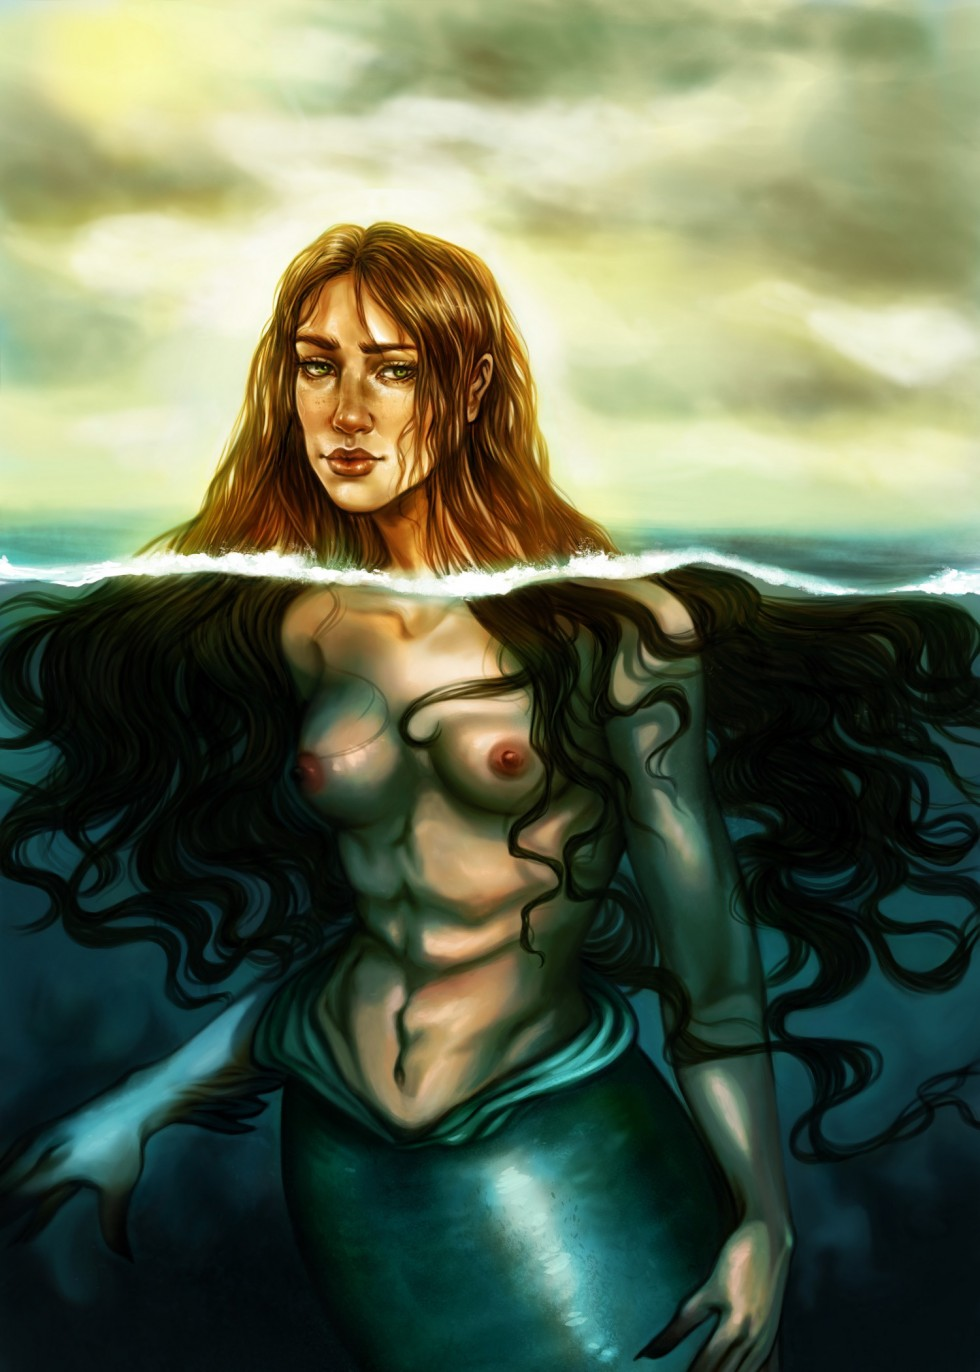 A blue green yellow and teal color palette. The image is a  mermaid, half submerged in water. You can see her face about the water line and beneath the water is her bare chest and her shiny green tail.